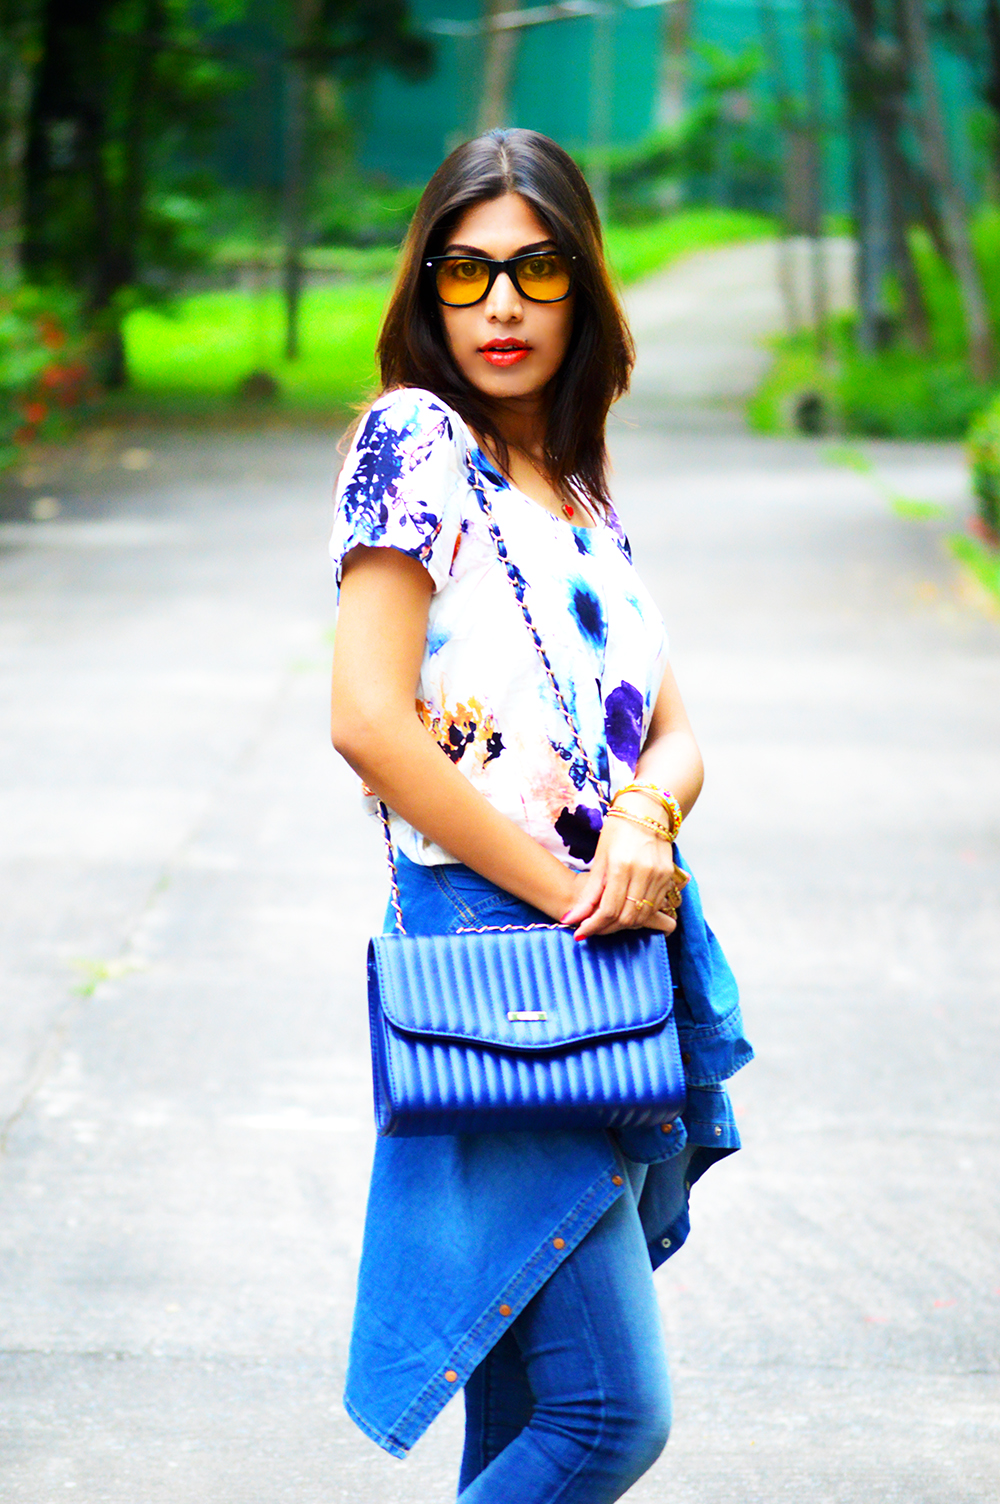 Fashion, Style, Photography, Street Style, Fashion Photography, Denim, Only Top, New look Denim Shirt, Casual Wear, Street Style Photography, Denim Style-8